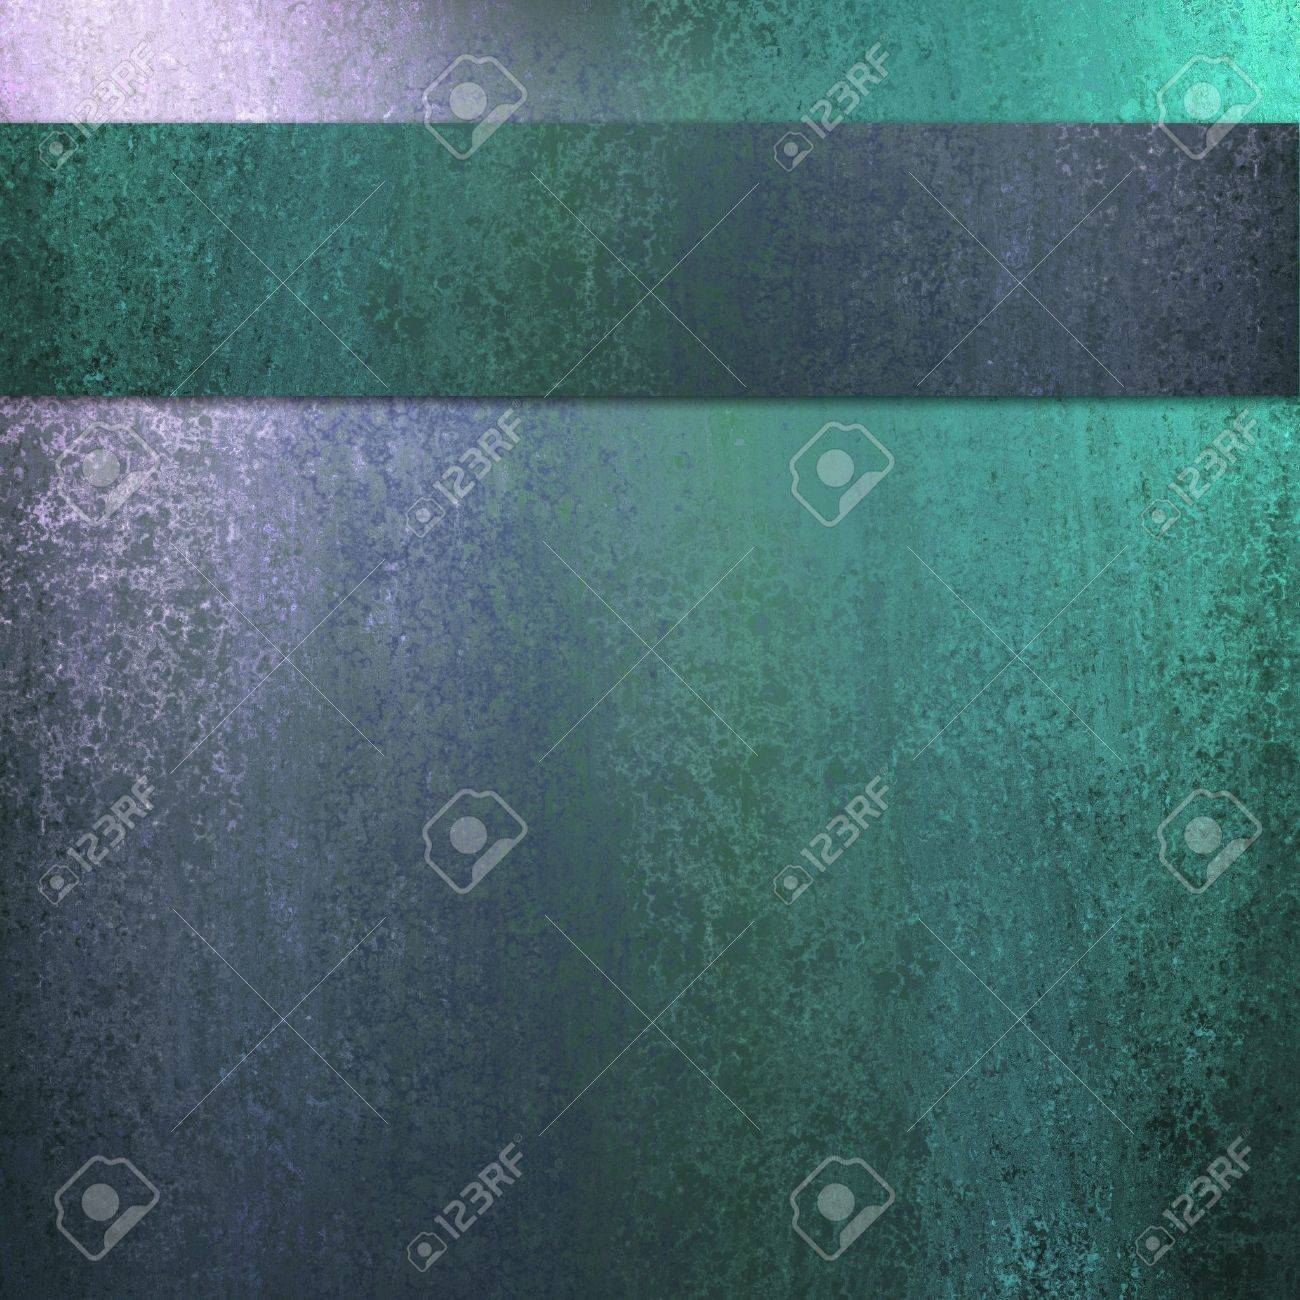 blue and green abstract background with lighting and sponge texture with dark ribbon stripe layout design and copyspace for ad or brochure text Stock Photo - 12624092